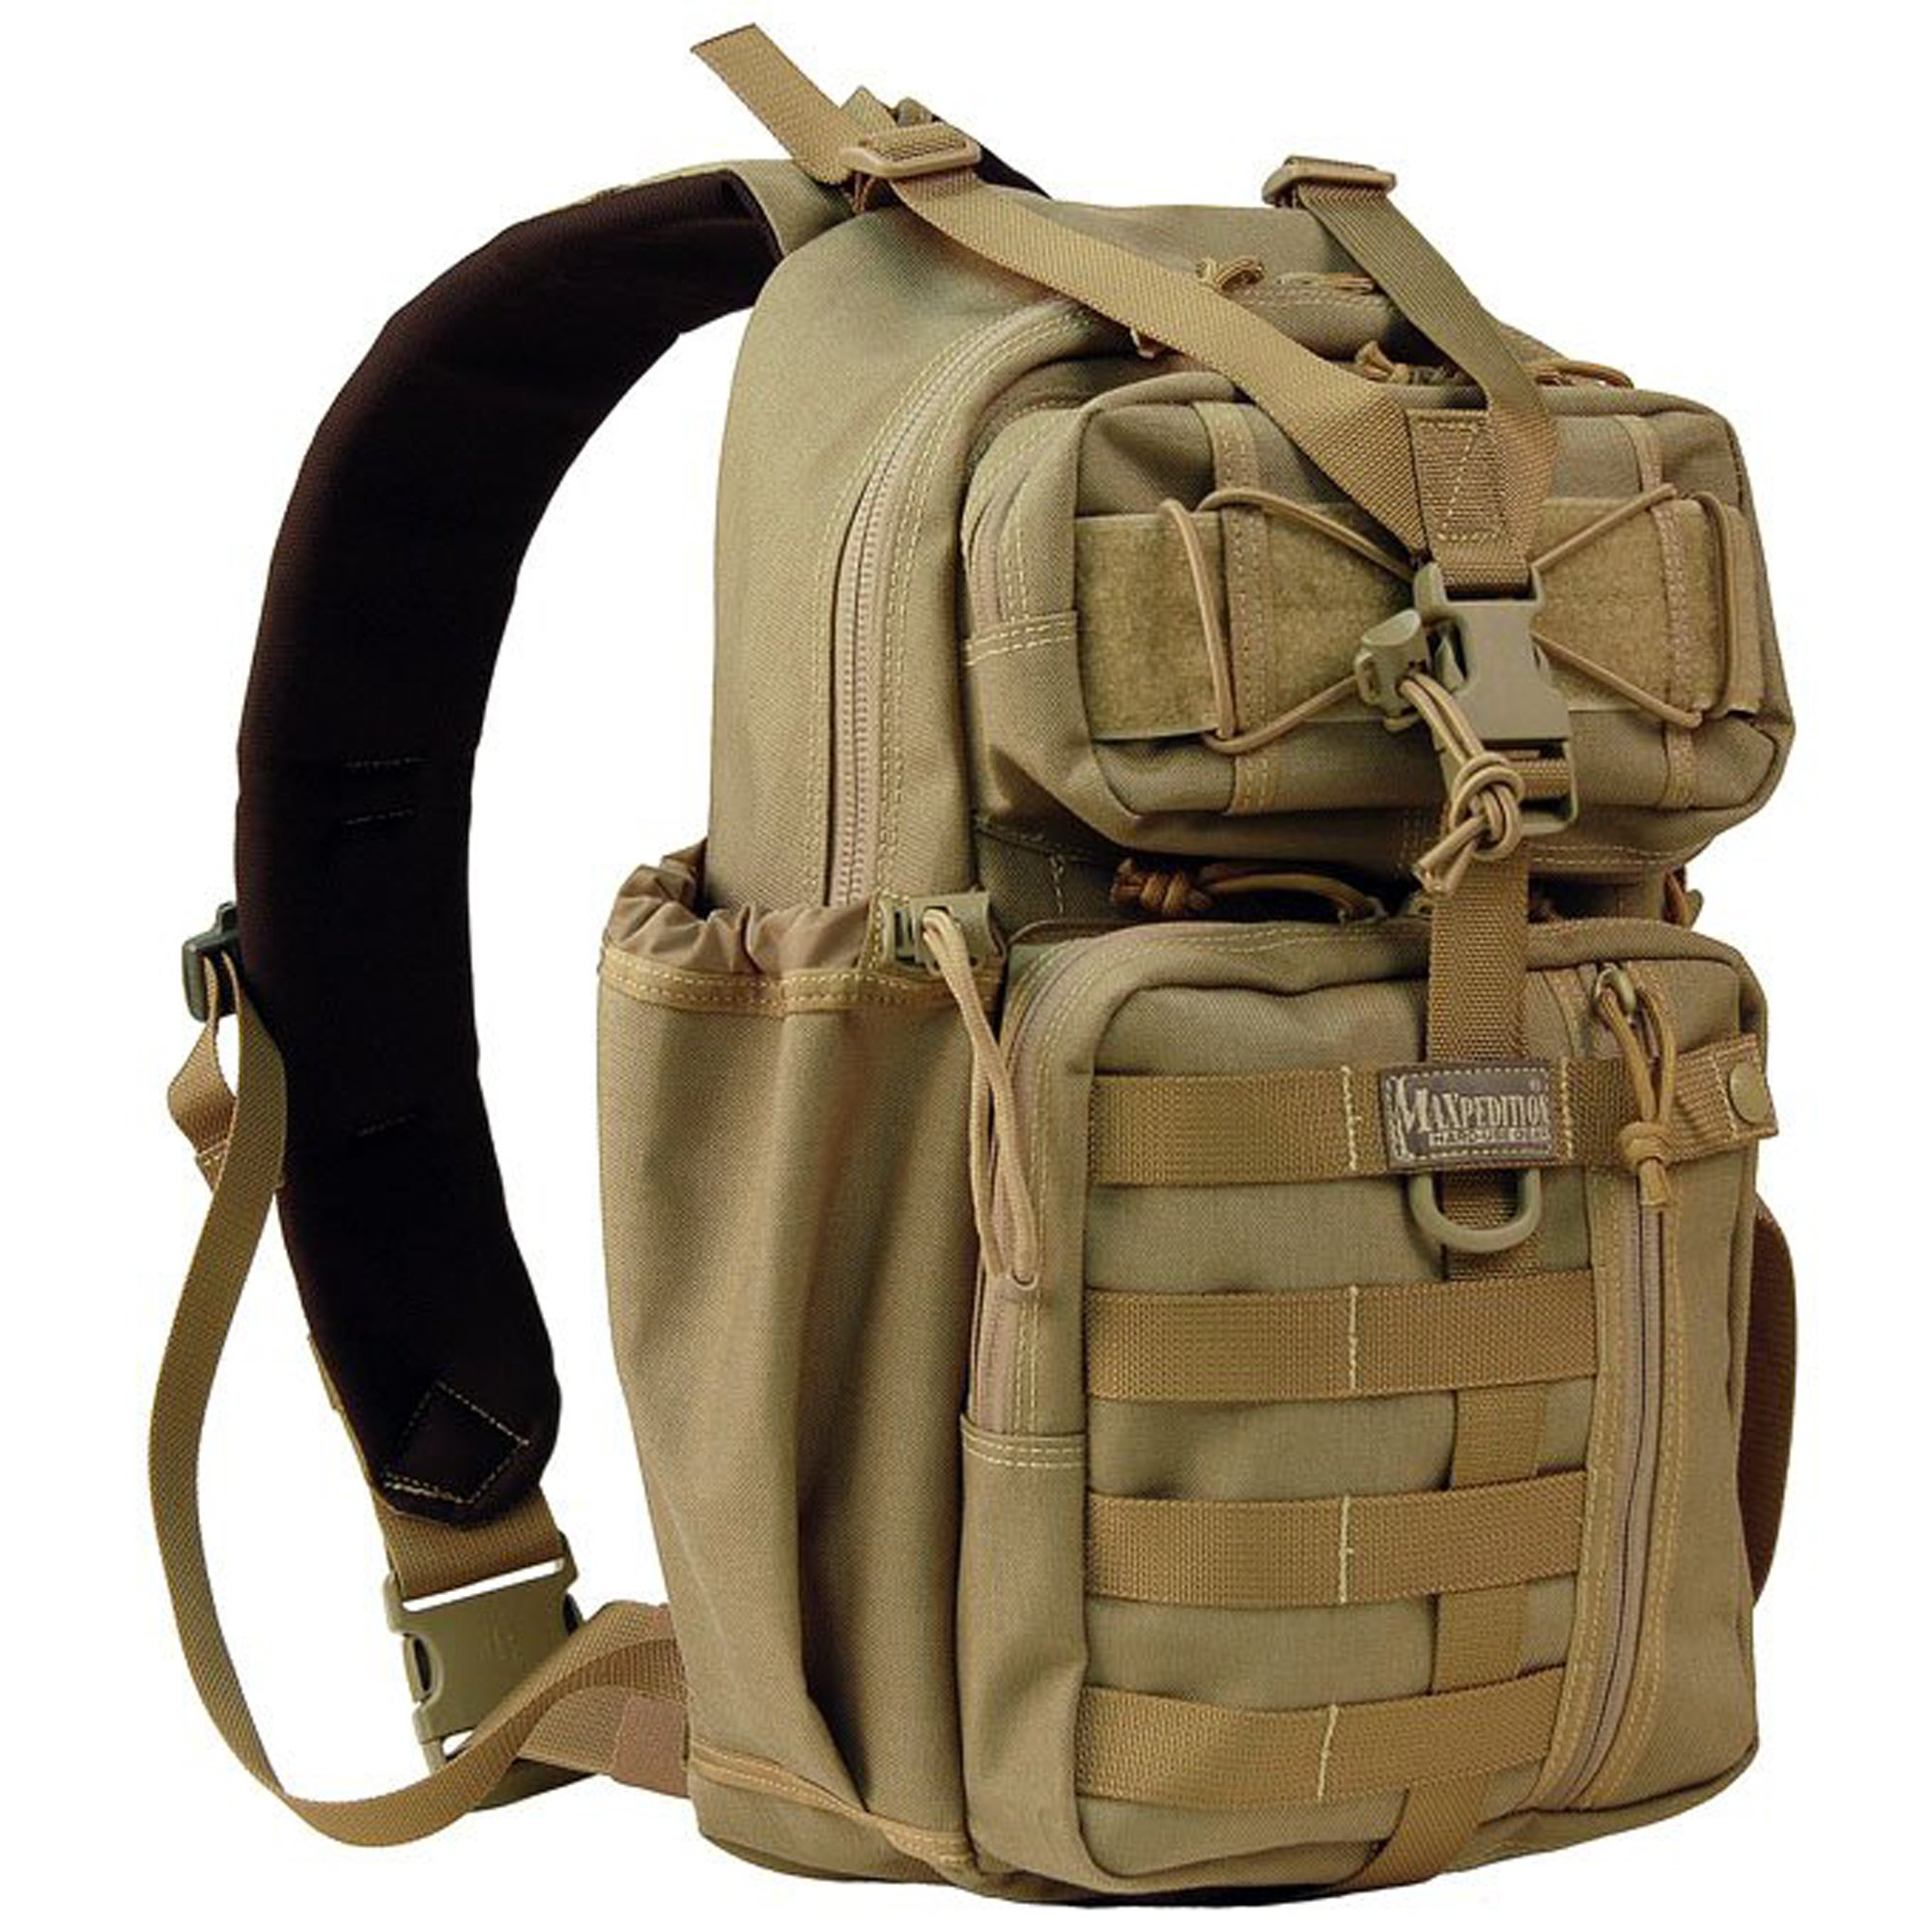 Maxpedition Sitka Gearslinger, Khaki by Maxpedition